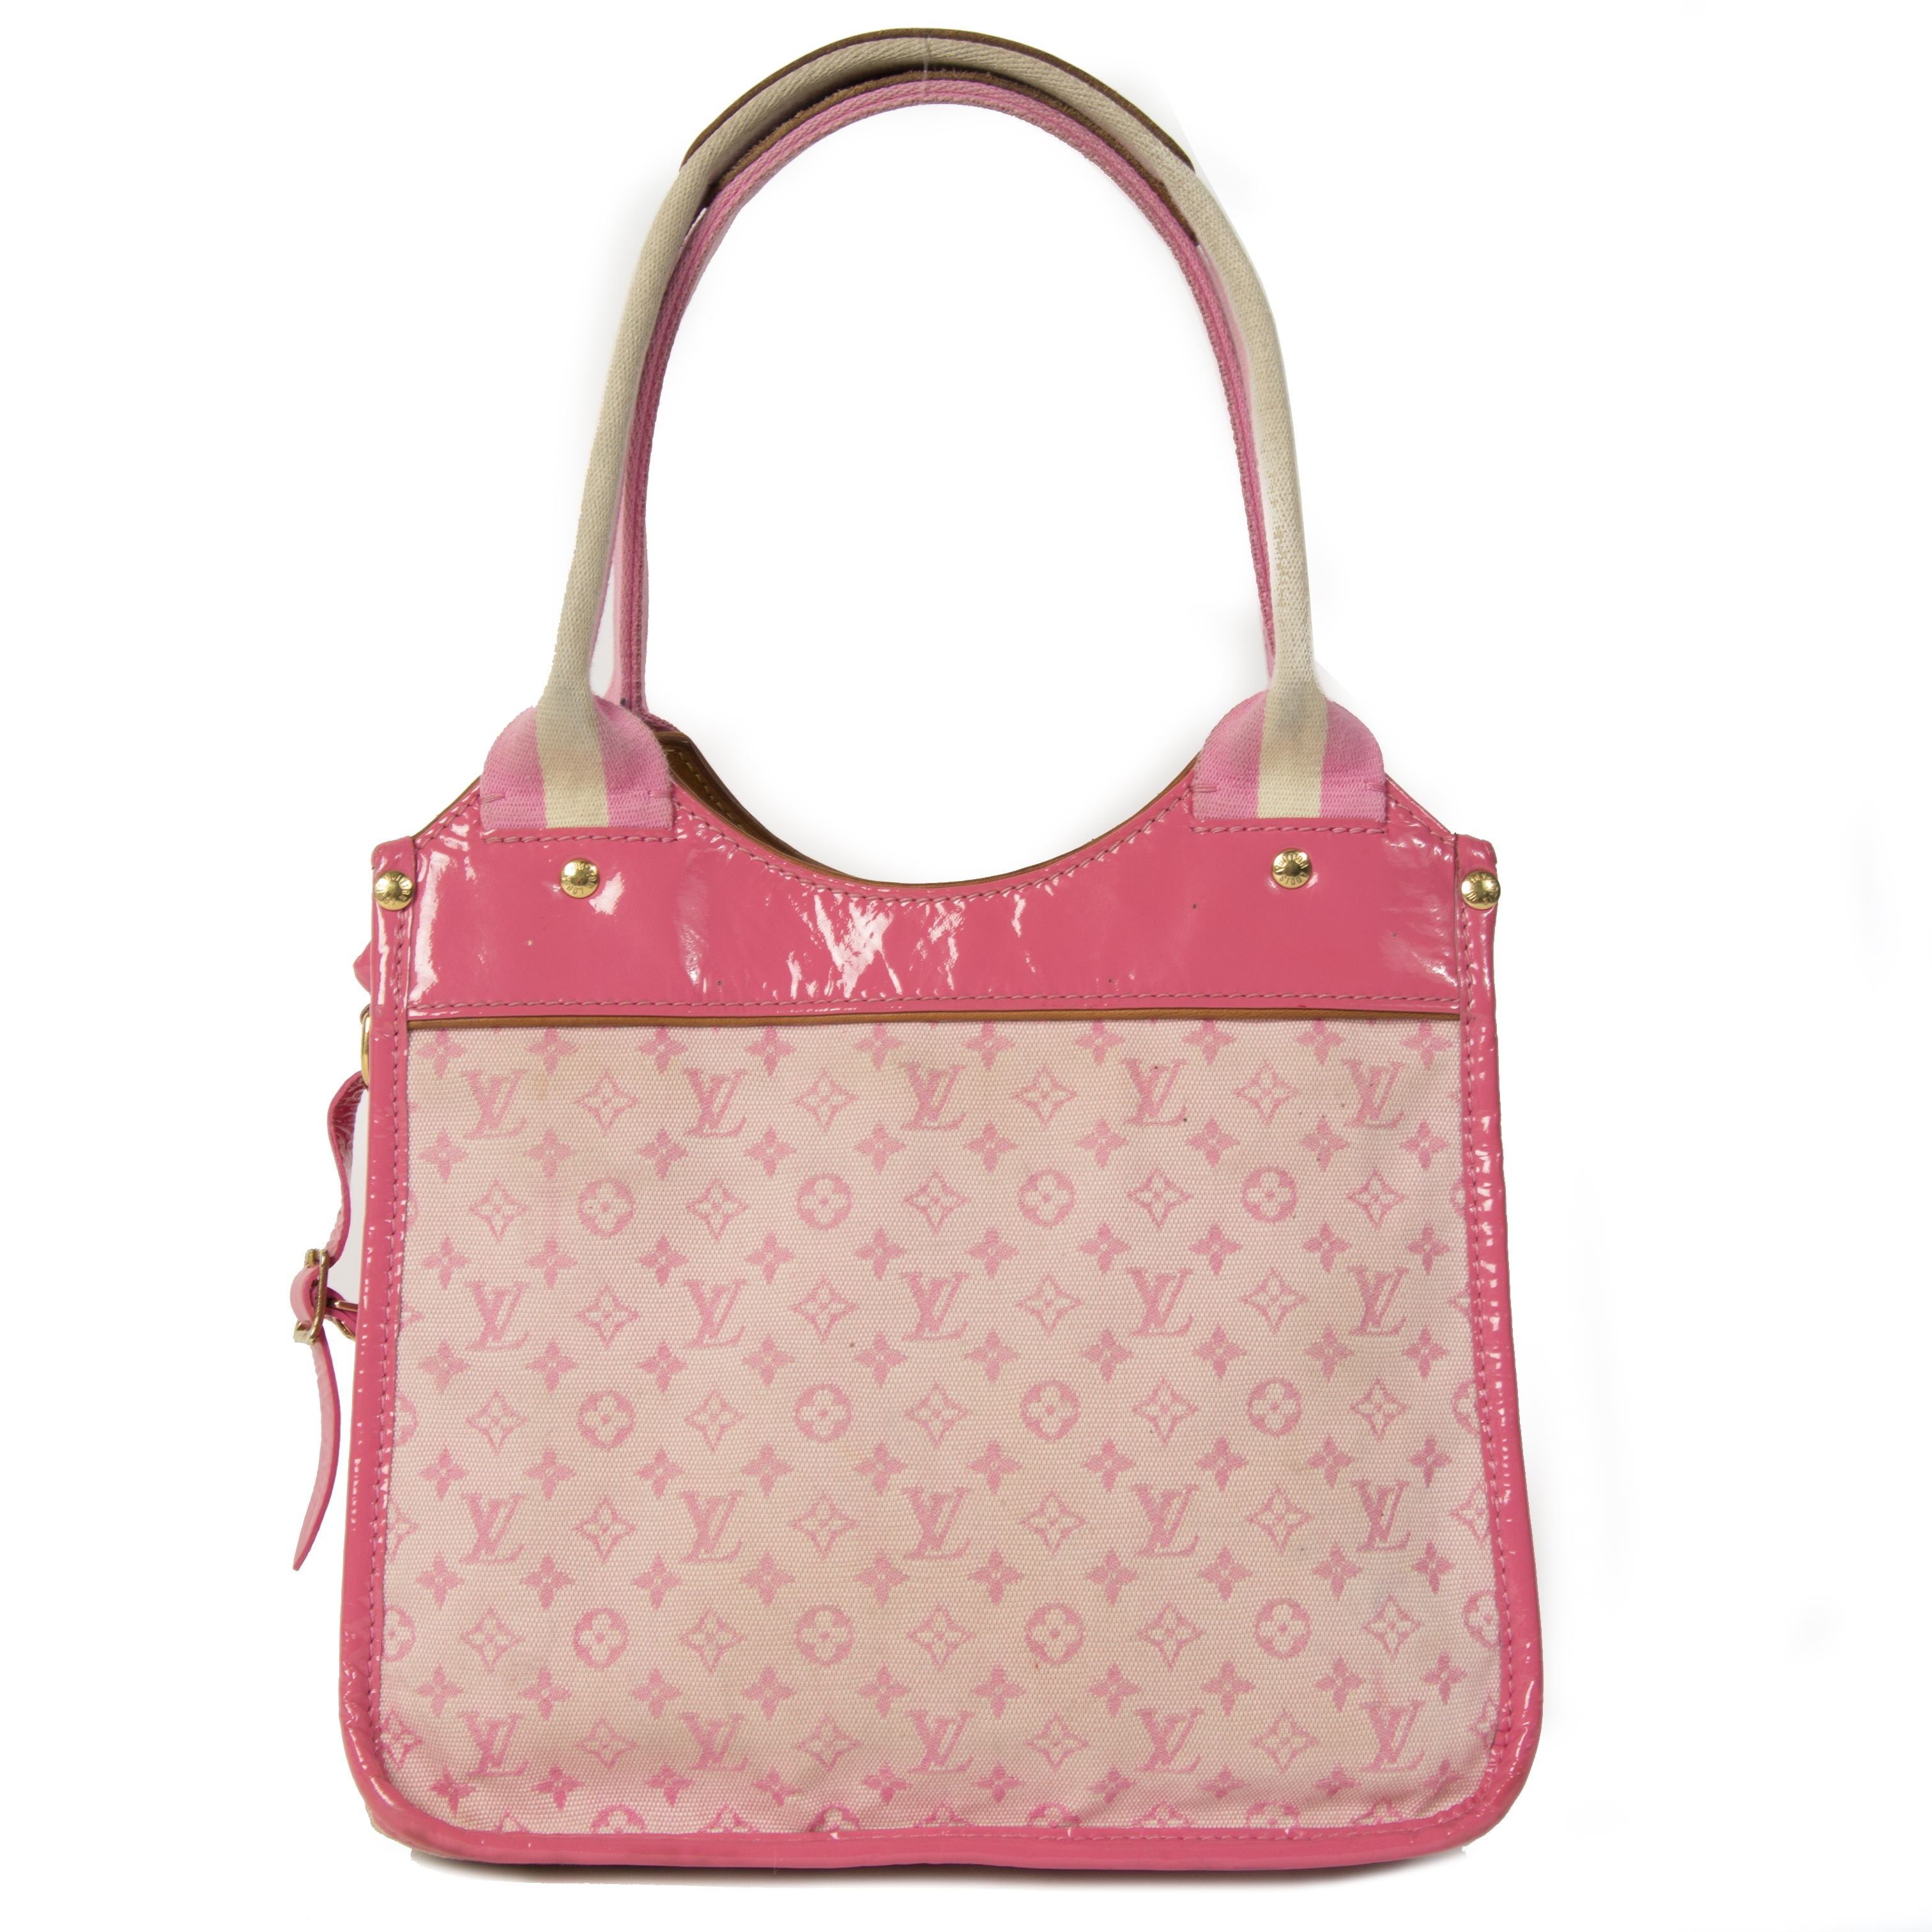 Louis Vuitton Pink Kathleen Monogram Mini Handbag